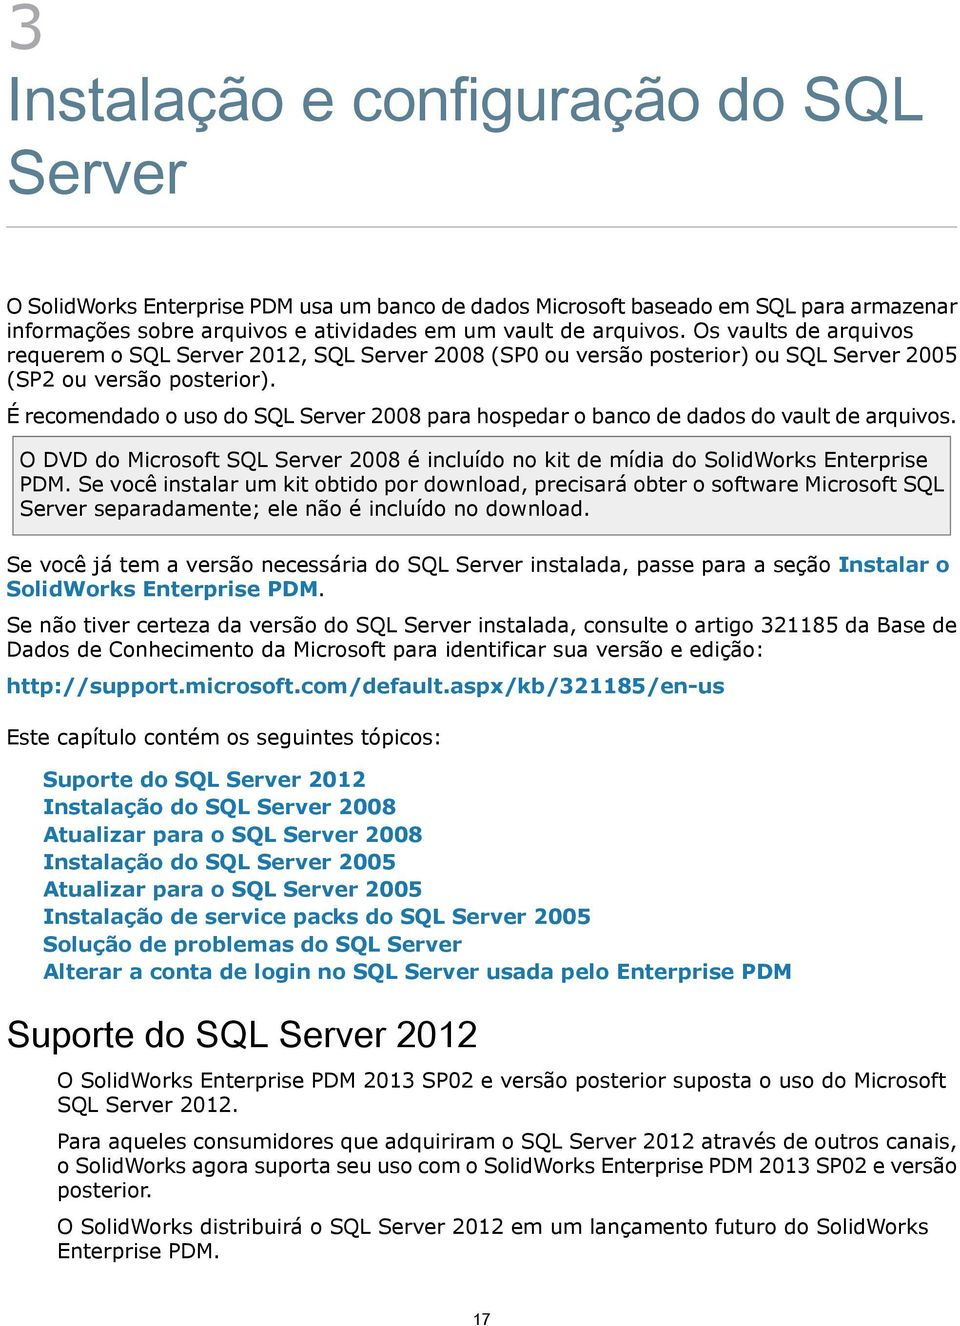 É recomendado o uso do SQL Server 2008 para hospedar o banco de dados do vault de arquivos. O DVD do Microsoft SQL Server 2008 é incluído no kit de mídia do SolidWorks Enterprise PDM.